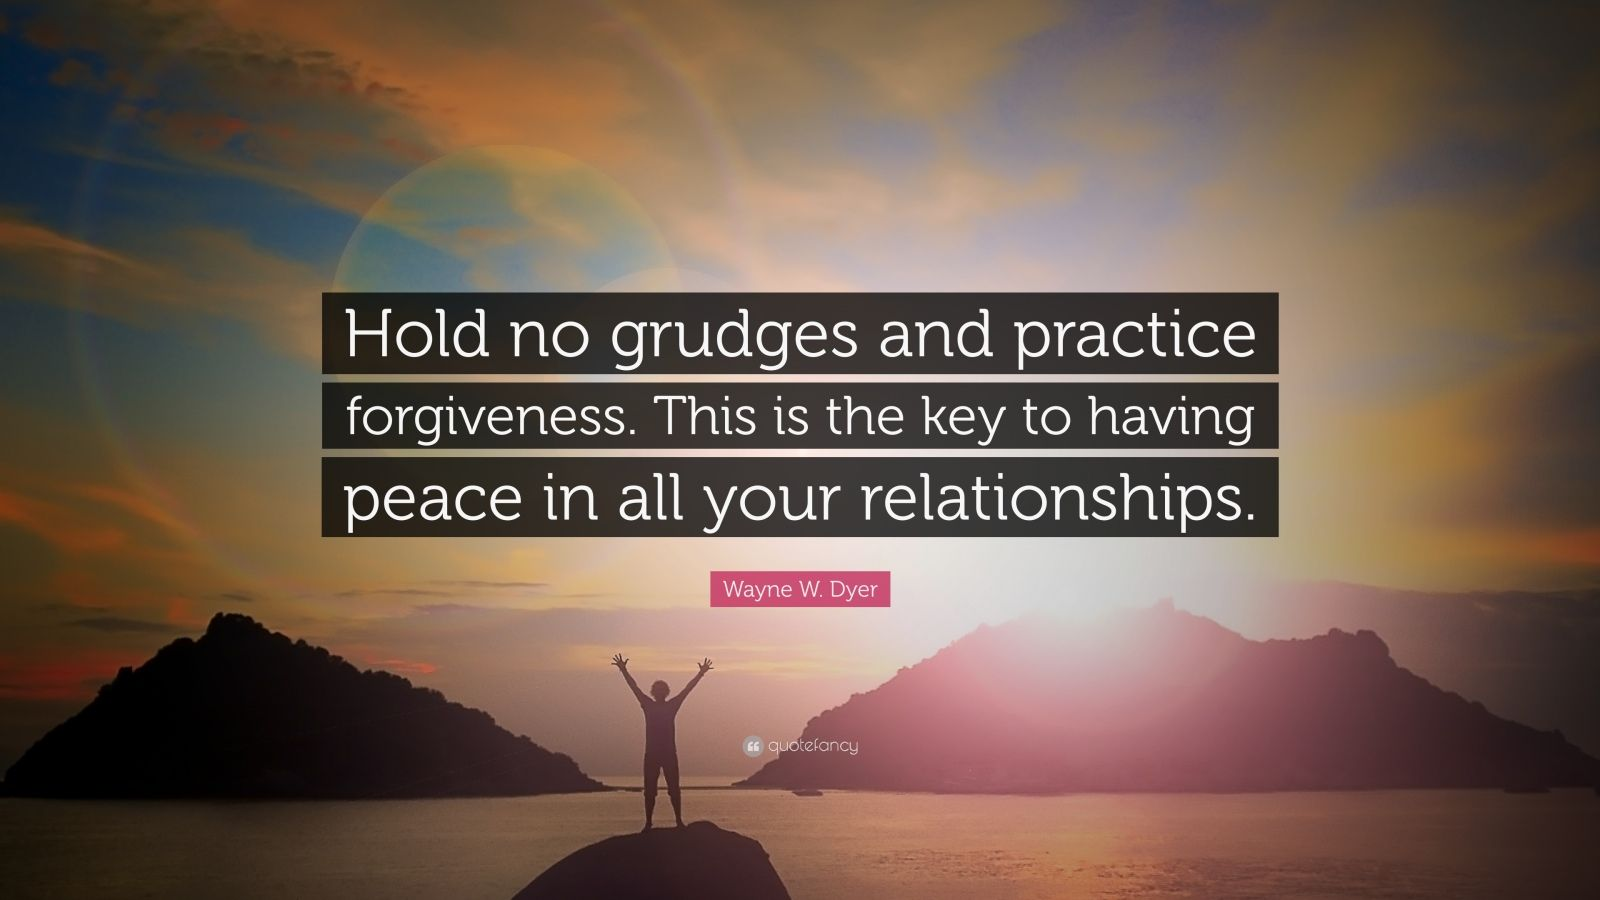 """Wayne W. Dyer Quote: """"Hold no grudges and practice forgiveness. This is the key to having peace in all your relationships."""""""